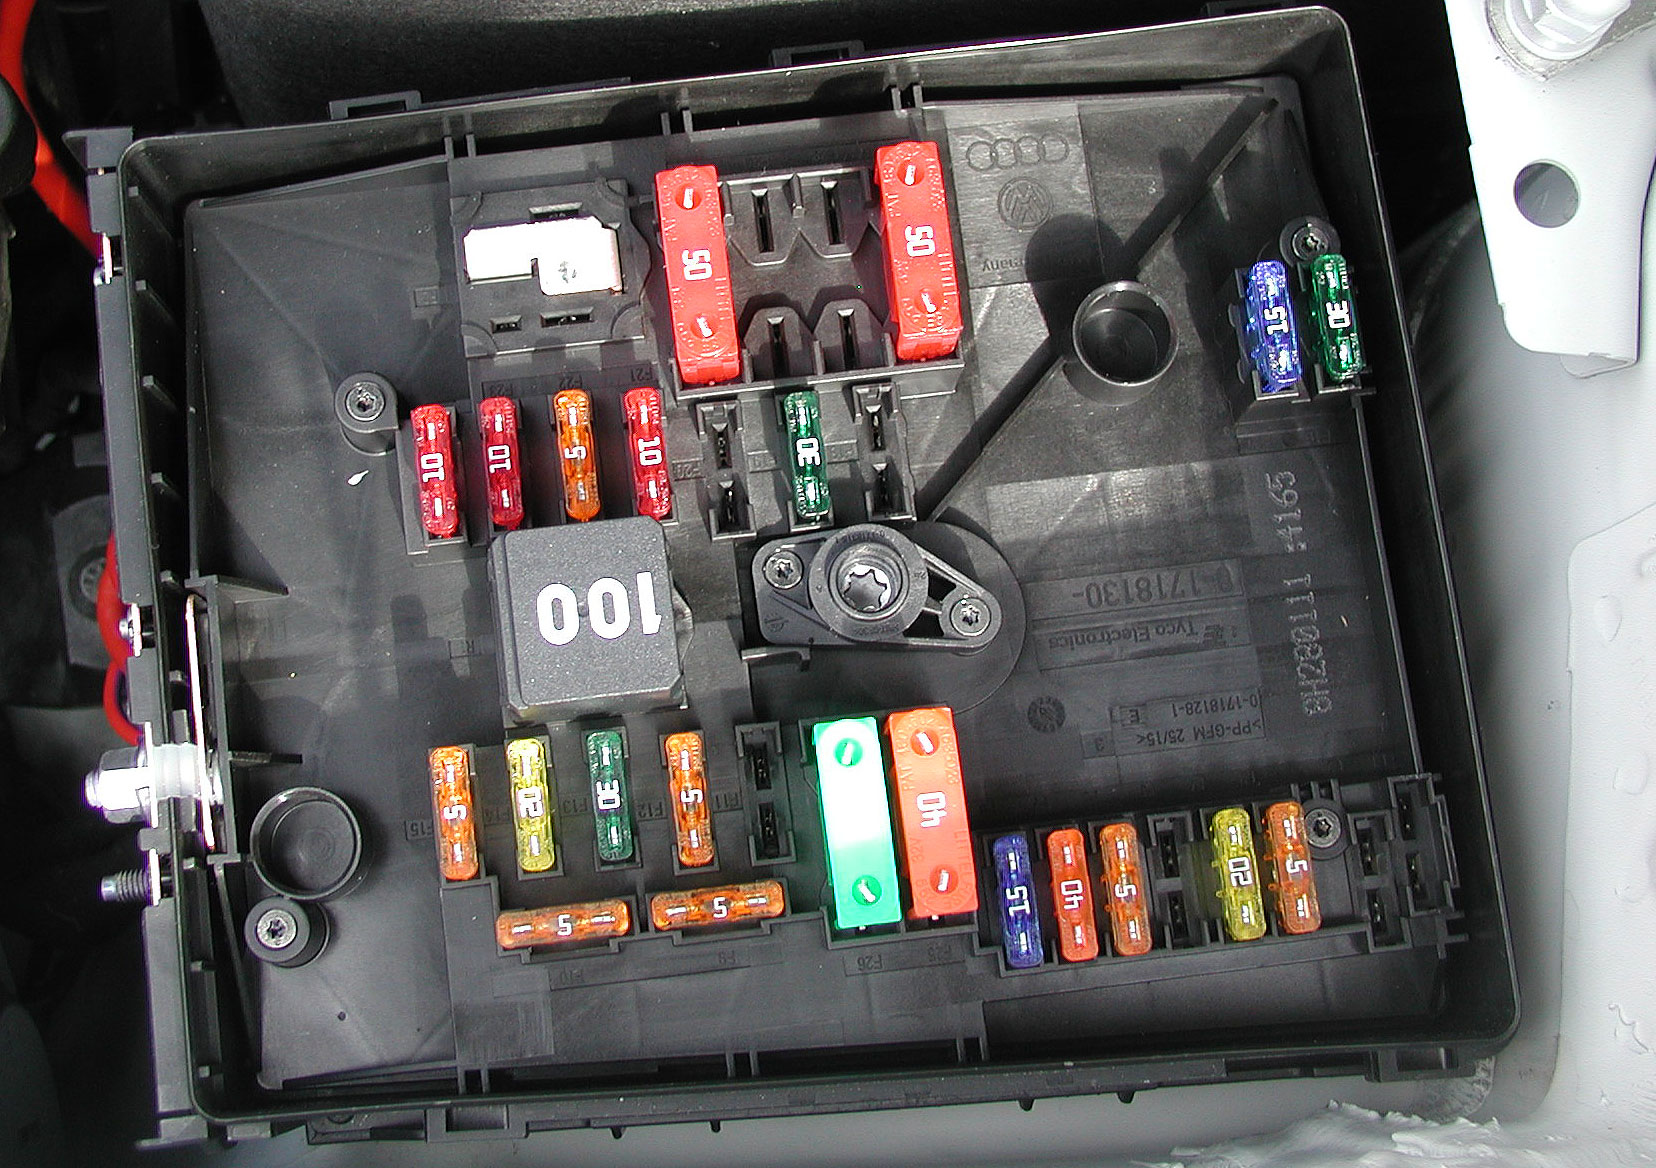 2011 Golf Tdi Fuse Box (picture Please!!!) Tdiclub Forums Golf MK6 Forum Mk6  Golf Fuse Box